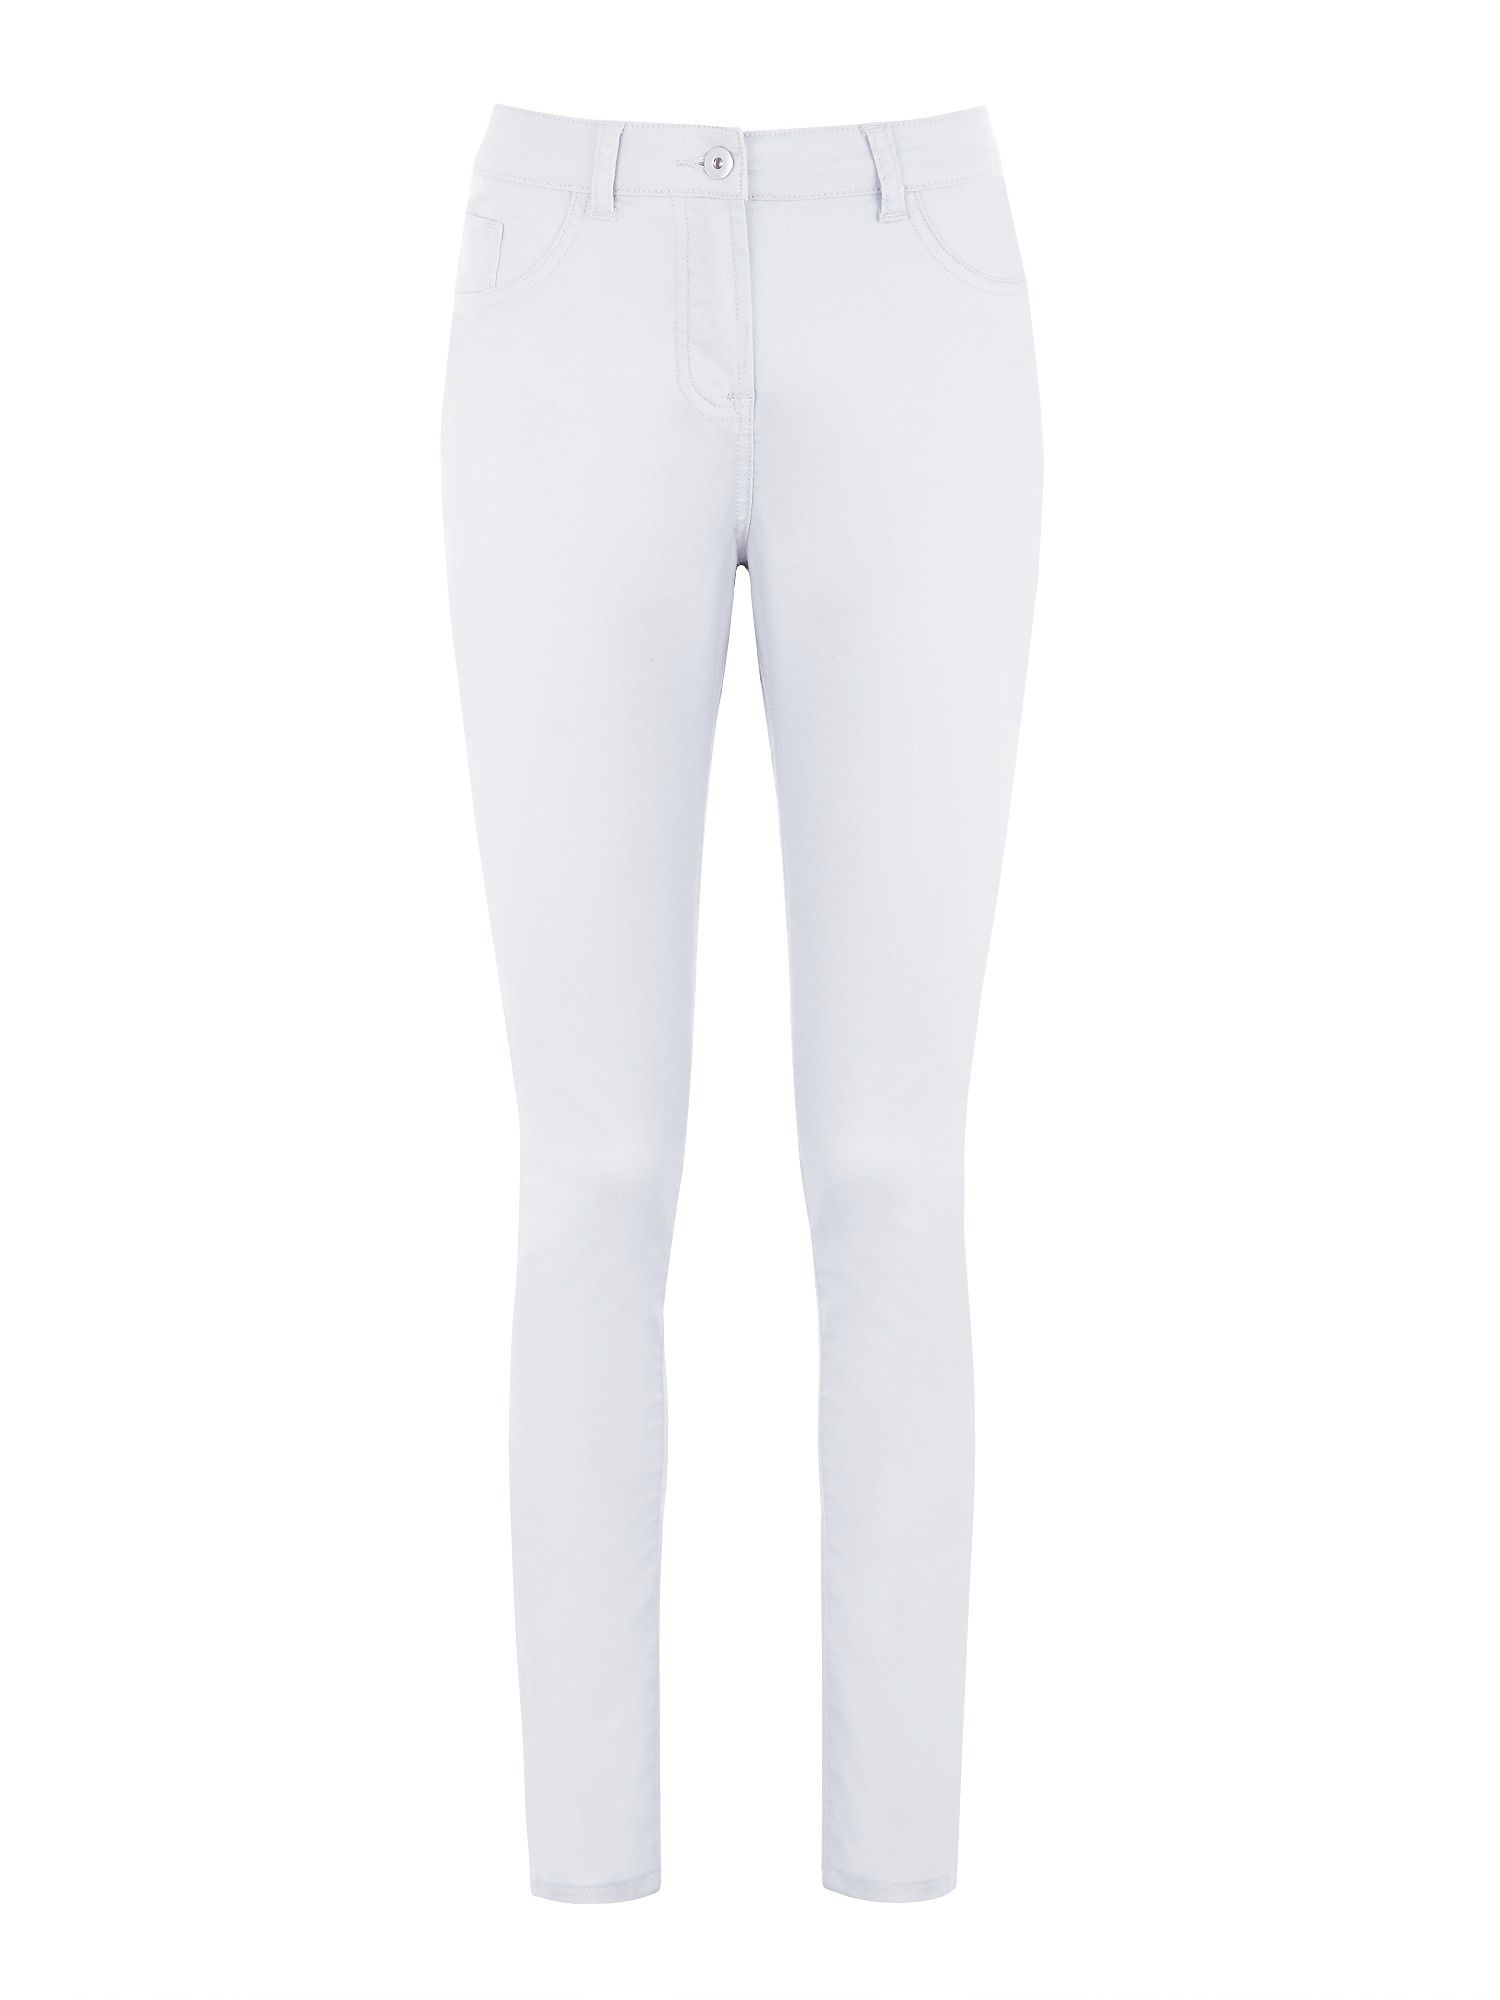 Grey slim fit jeggings